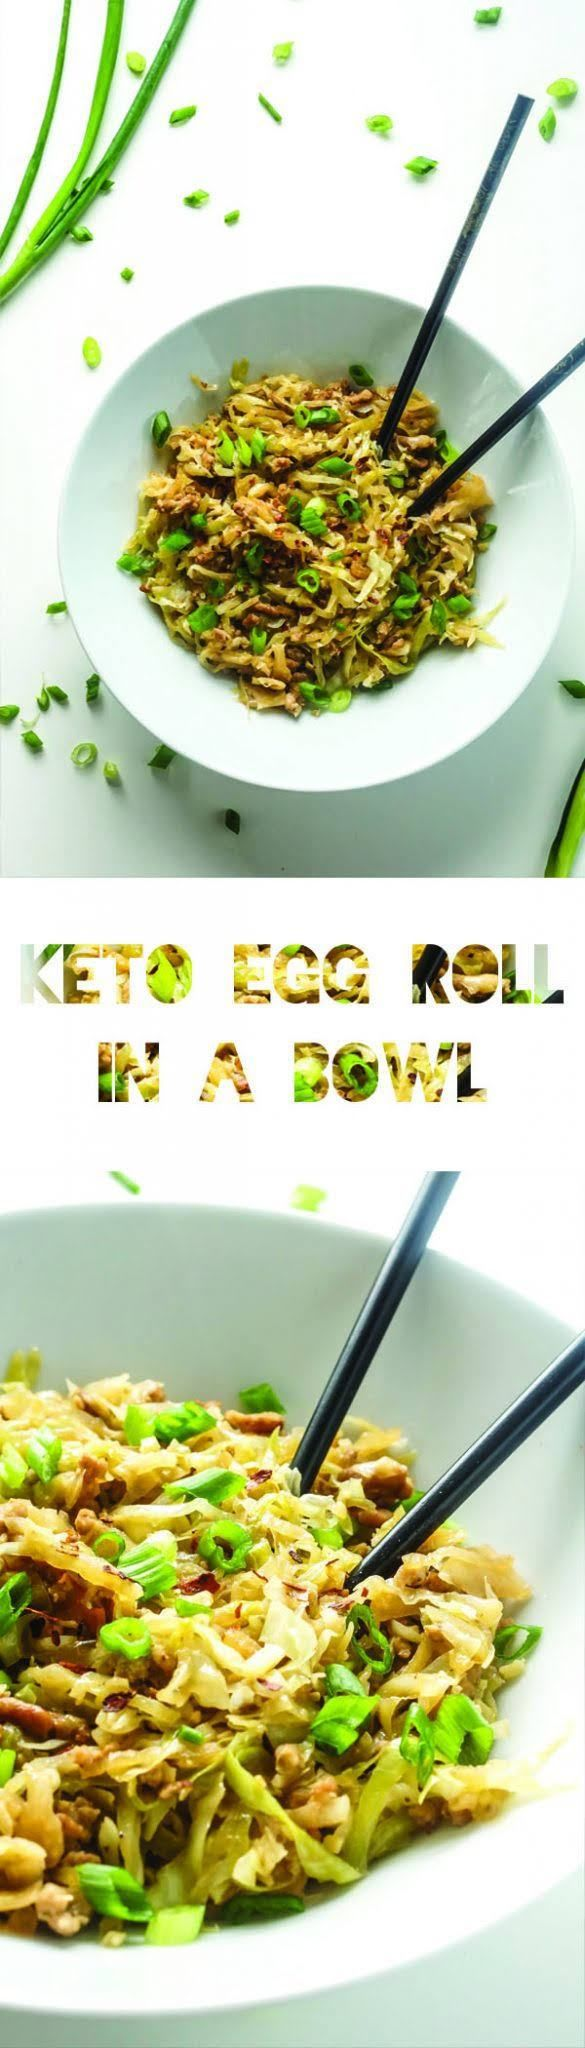 Keto Egg Roll in a Bowl Recipe | Cabbage | Low Carb Vegetable | Atkins | LCHF